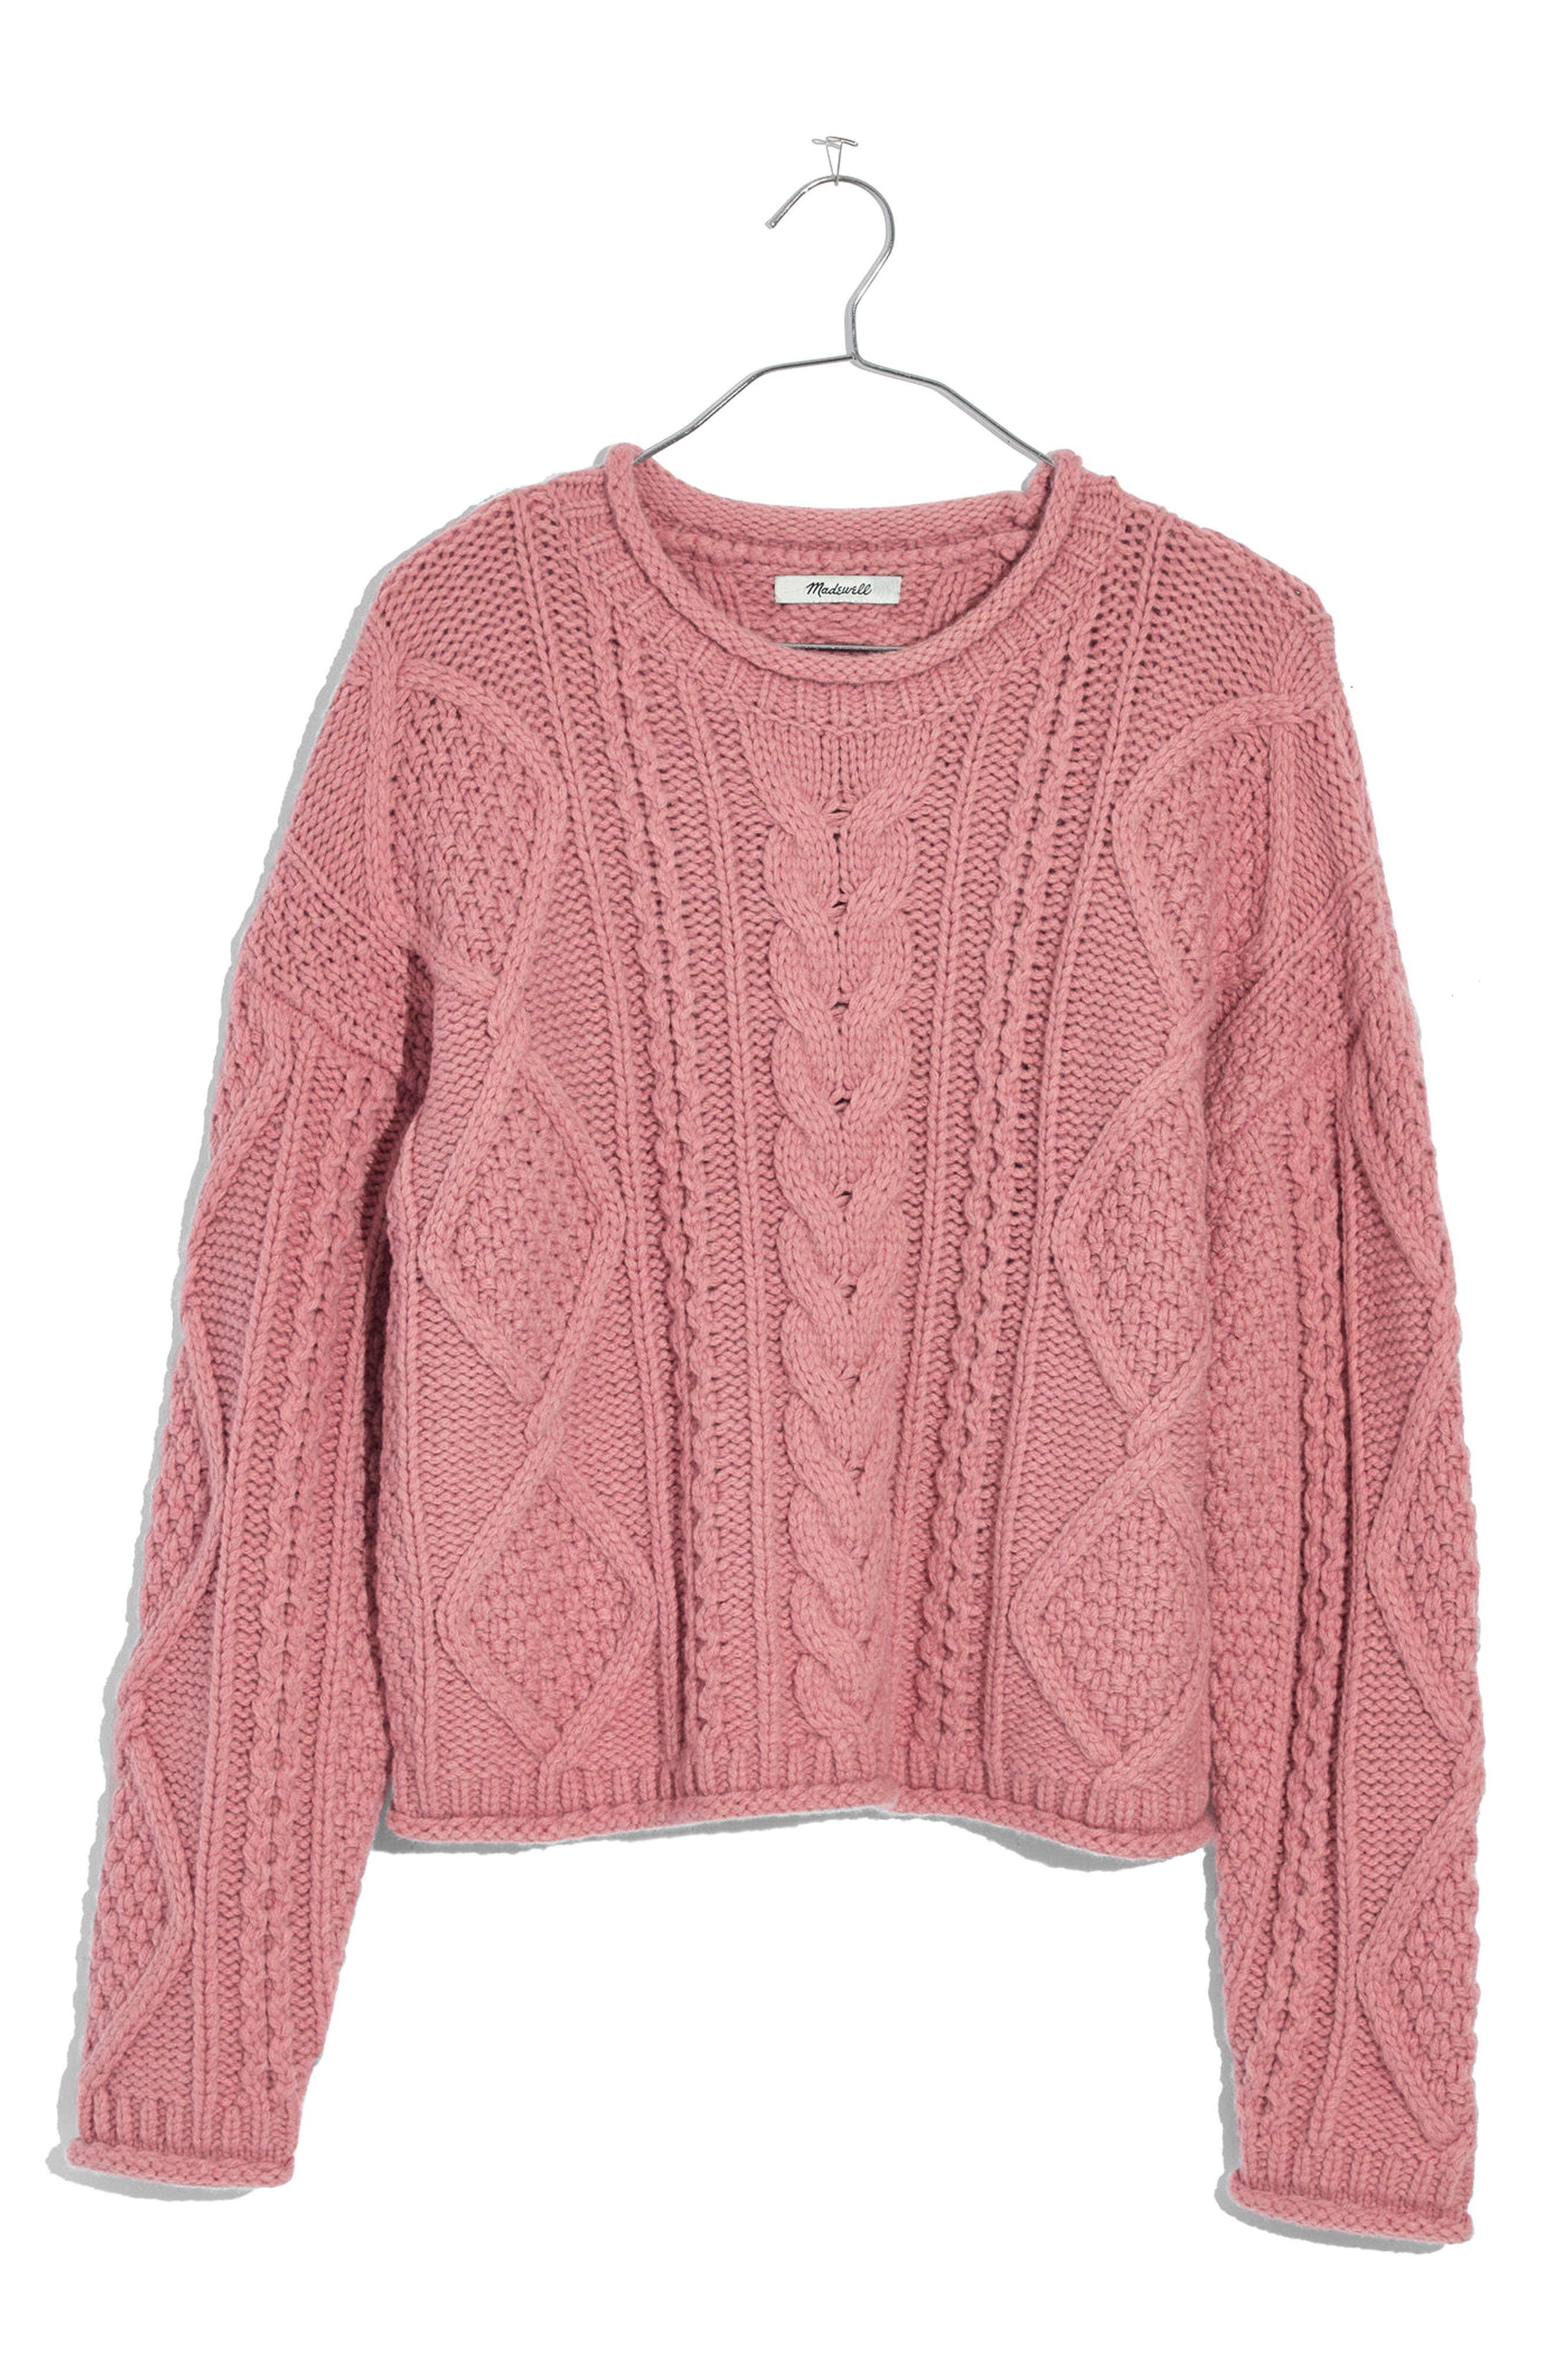 Madewell Slope Cable Pullover Sweater